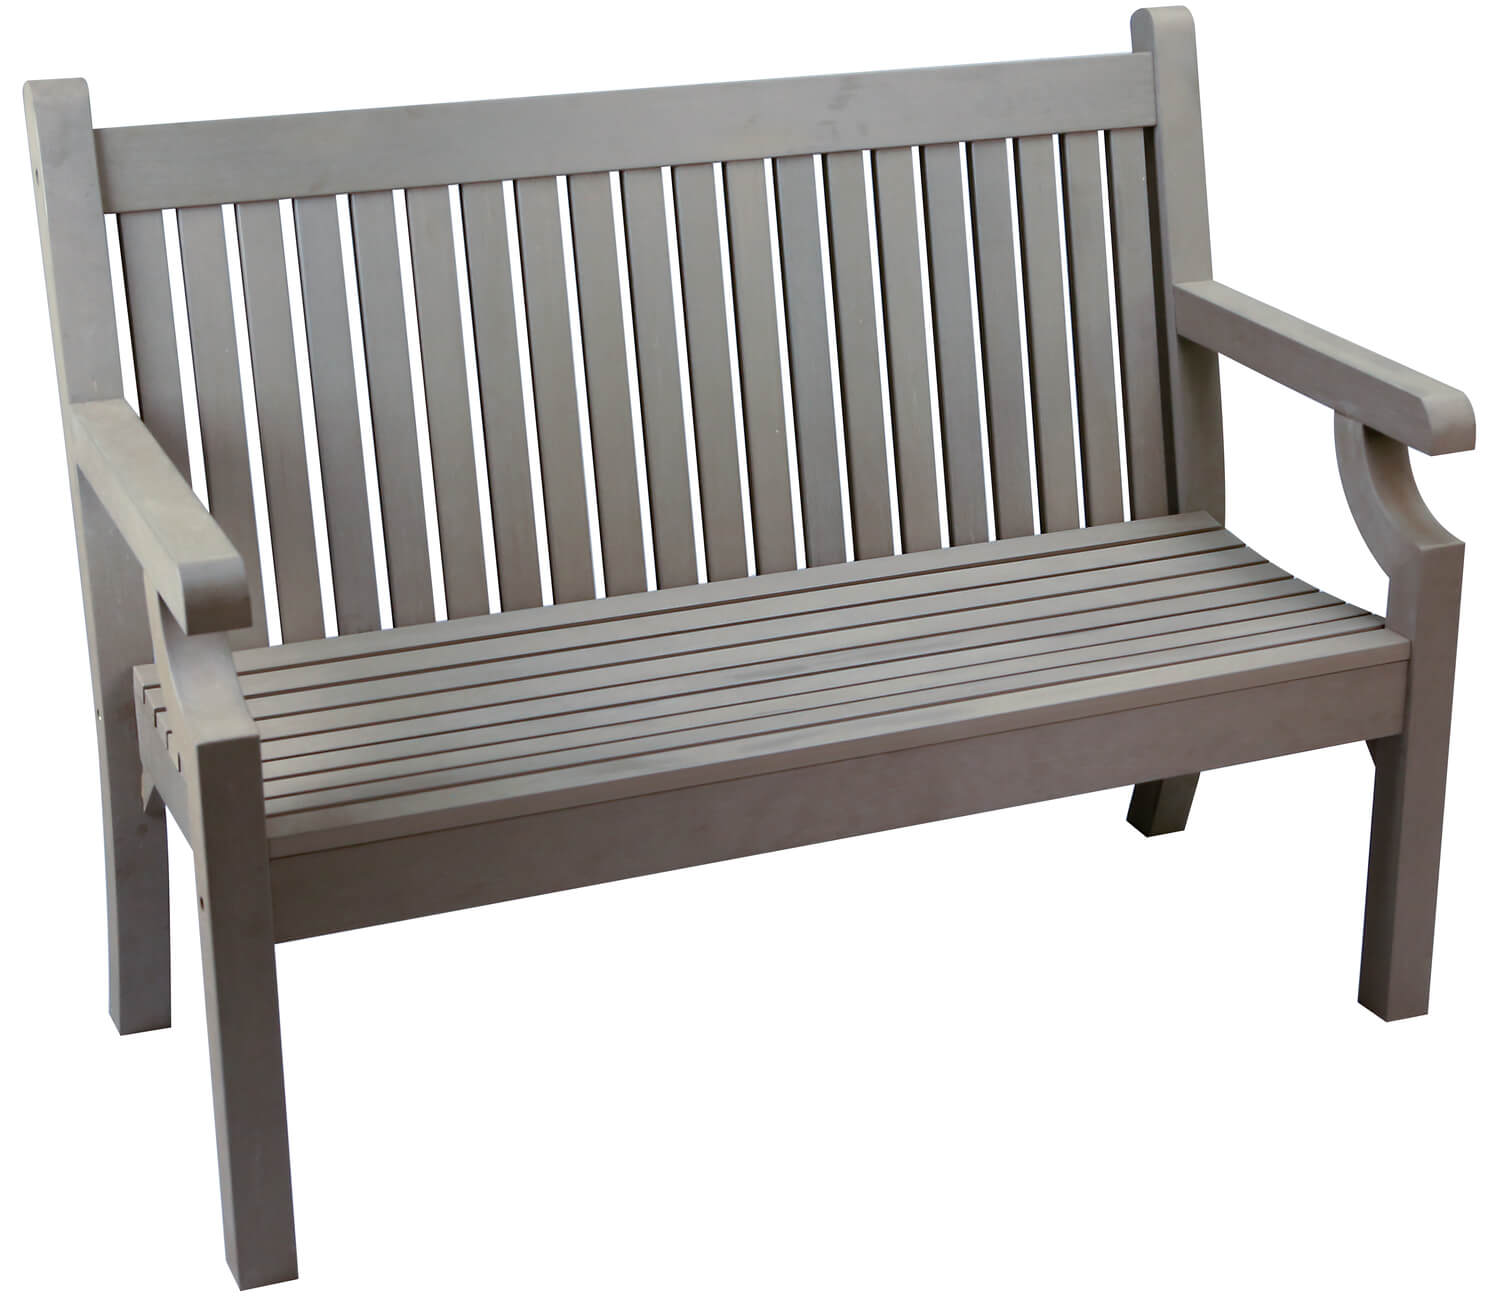 Hokku Designs Revionna Two Seat Bench With Storage: Sandwick Winawood 2 Seater Wood Effect Garden Bench